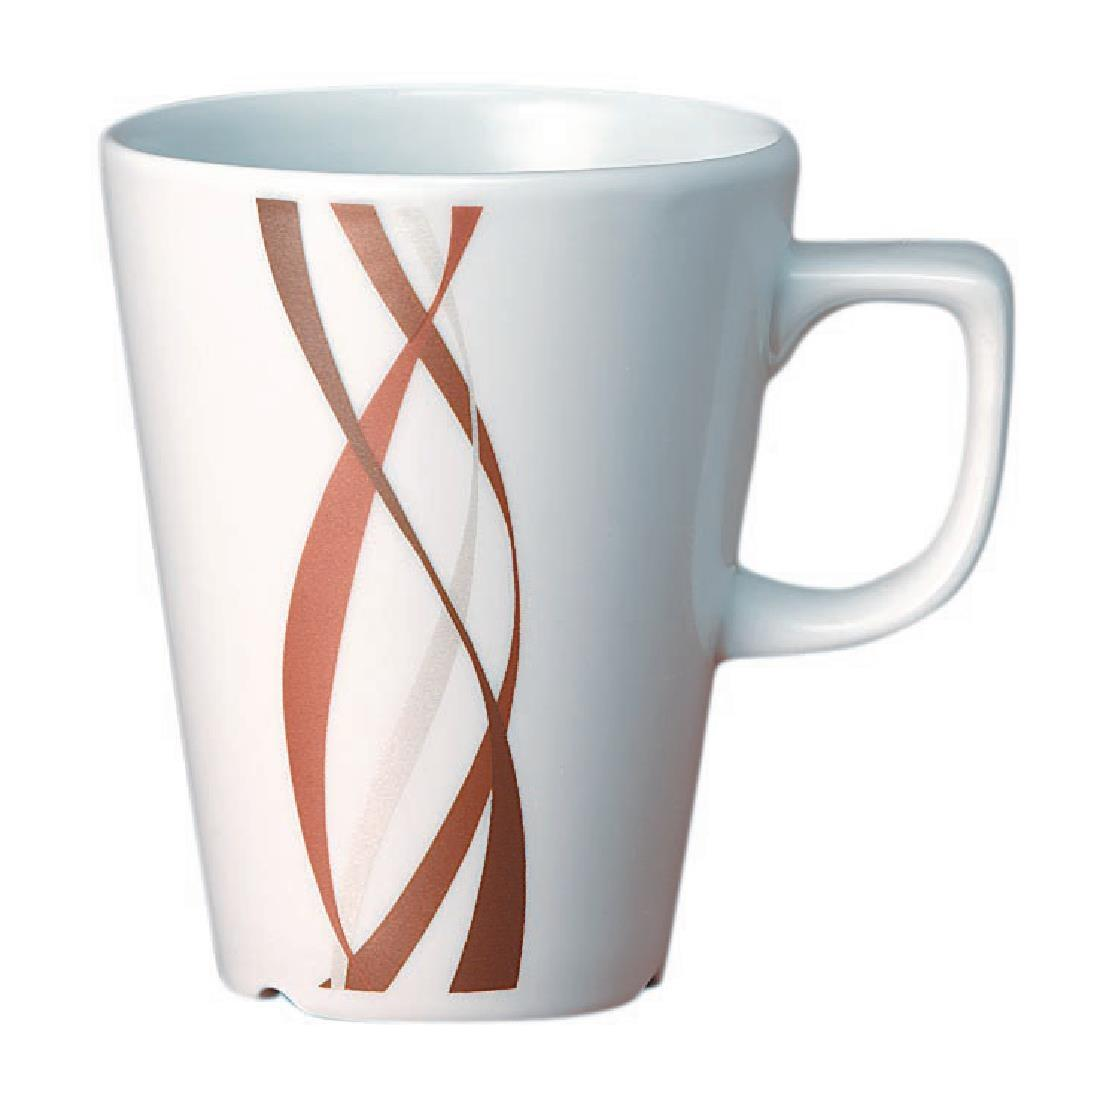 W536 - Helix Cafe Latte Mug